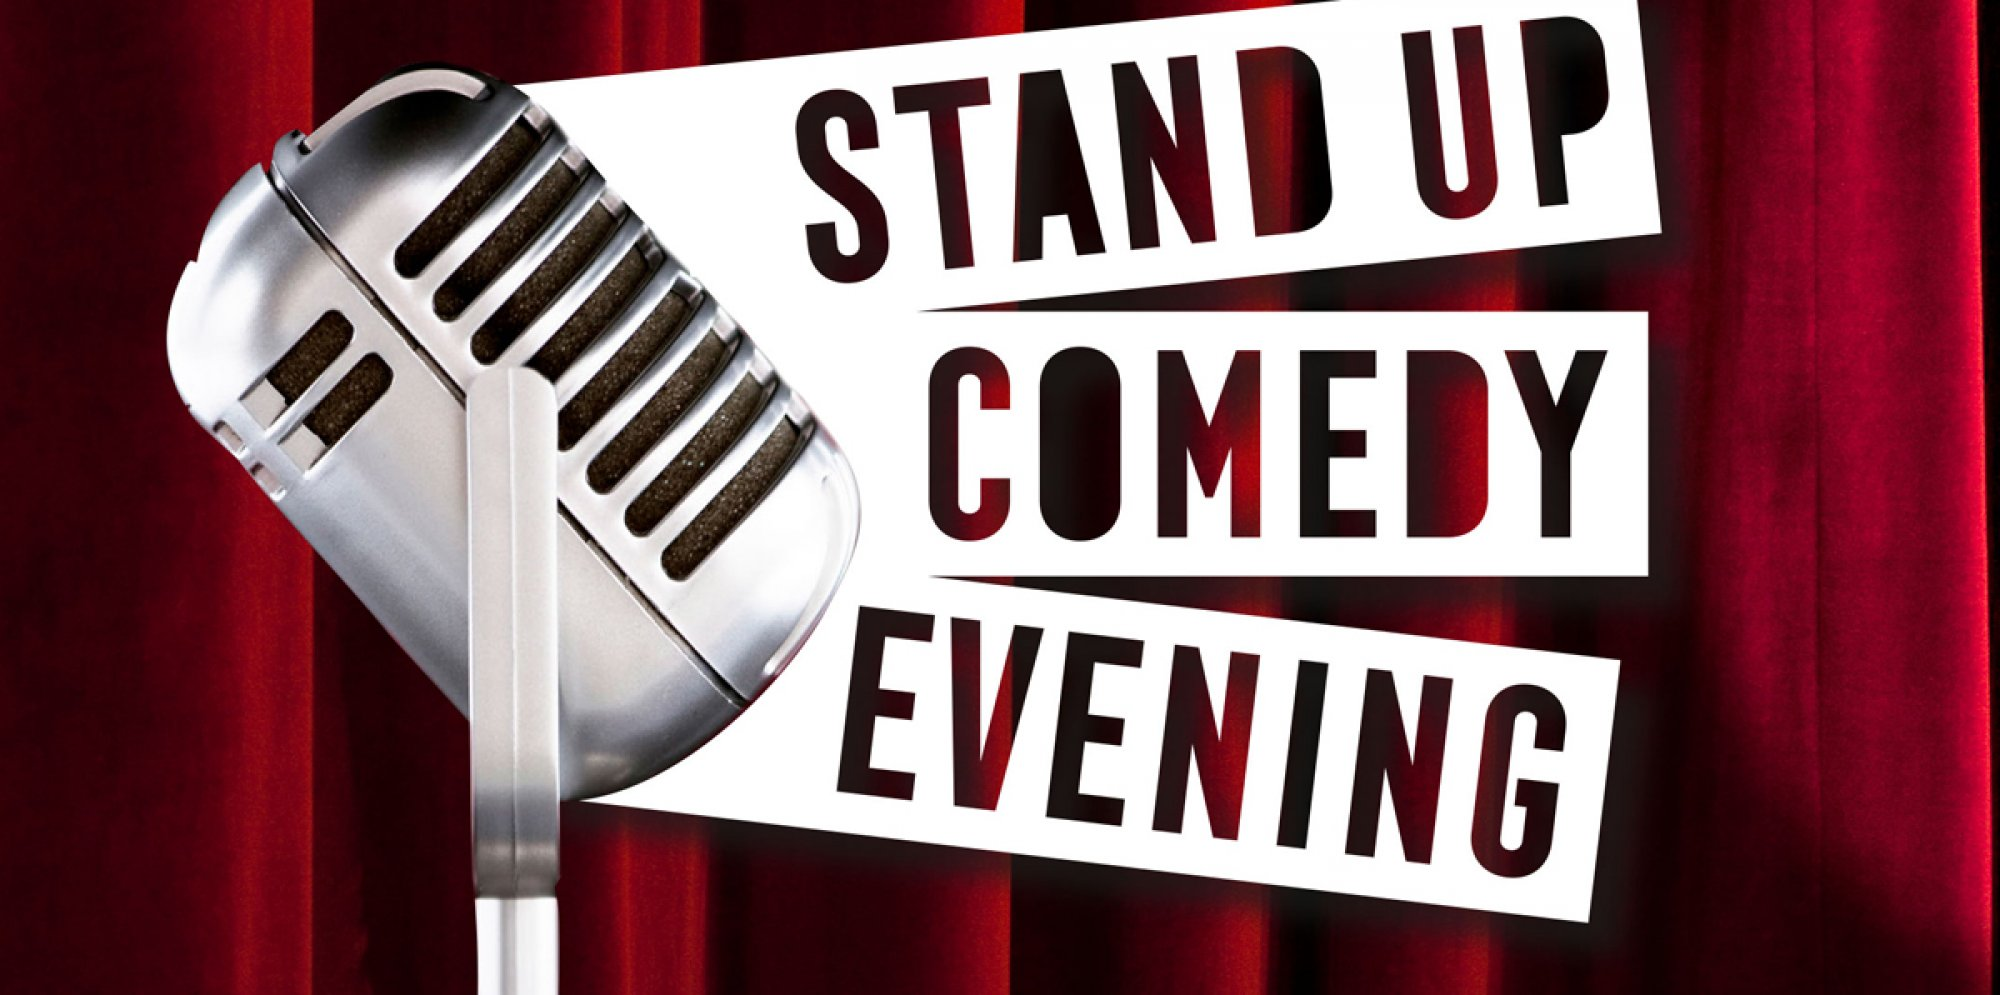 A Night of Comedy: a old-school microphone in front of a red velvet curtain. The words Stand Up Comedy Evening emerge from the microphone.